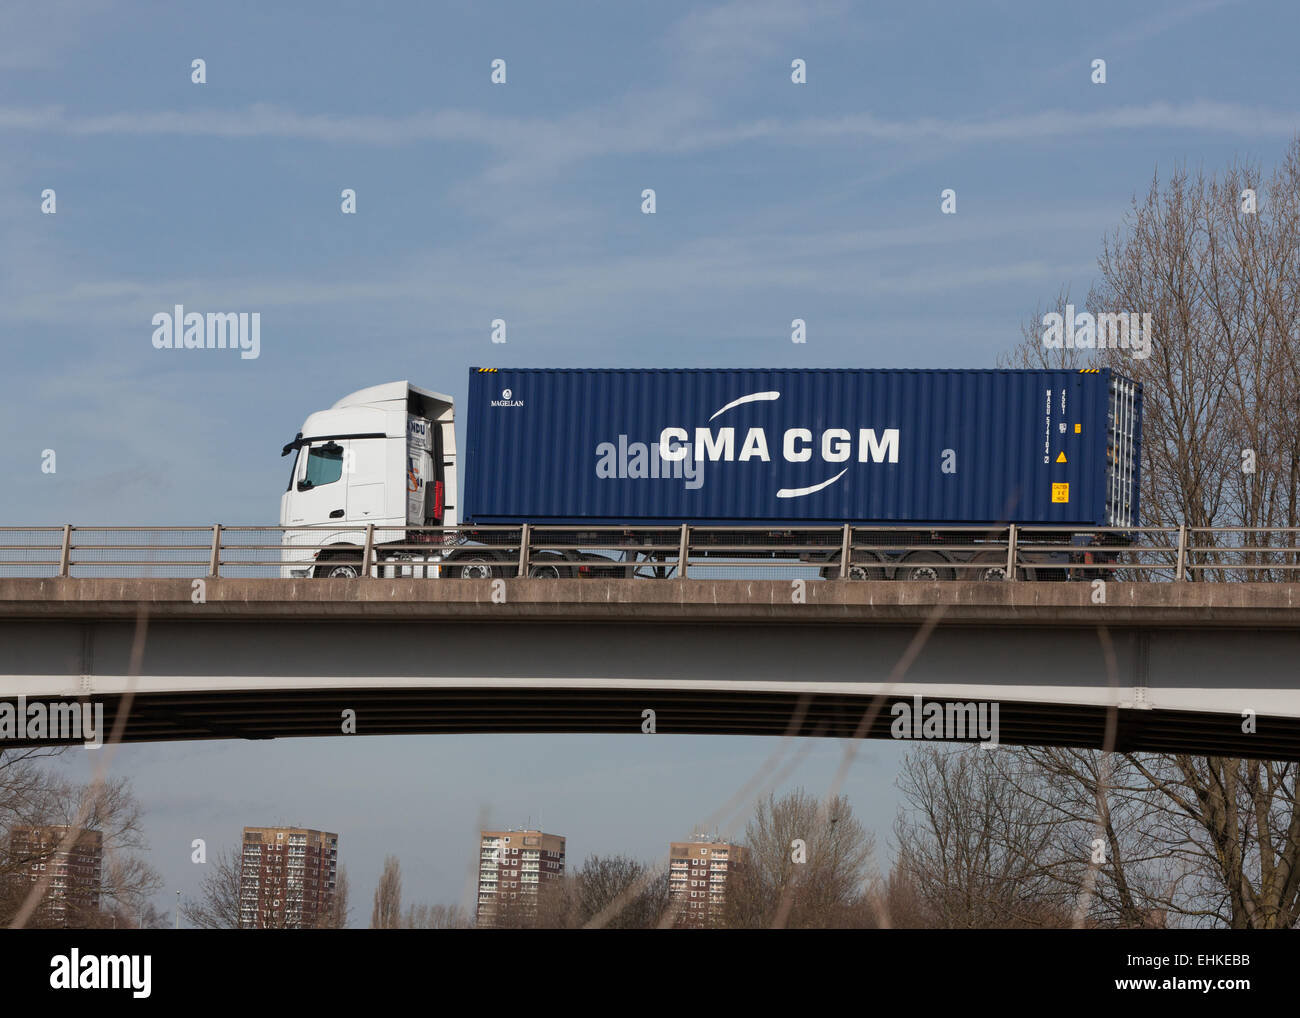 A CMA CGM freight container on a  truck travelling through the Midlands in the UK. - Stock Image